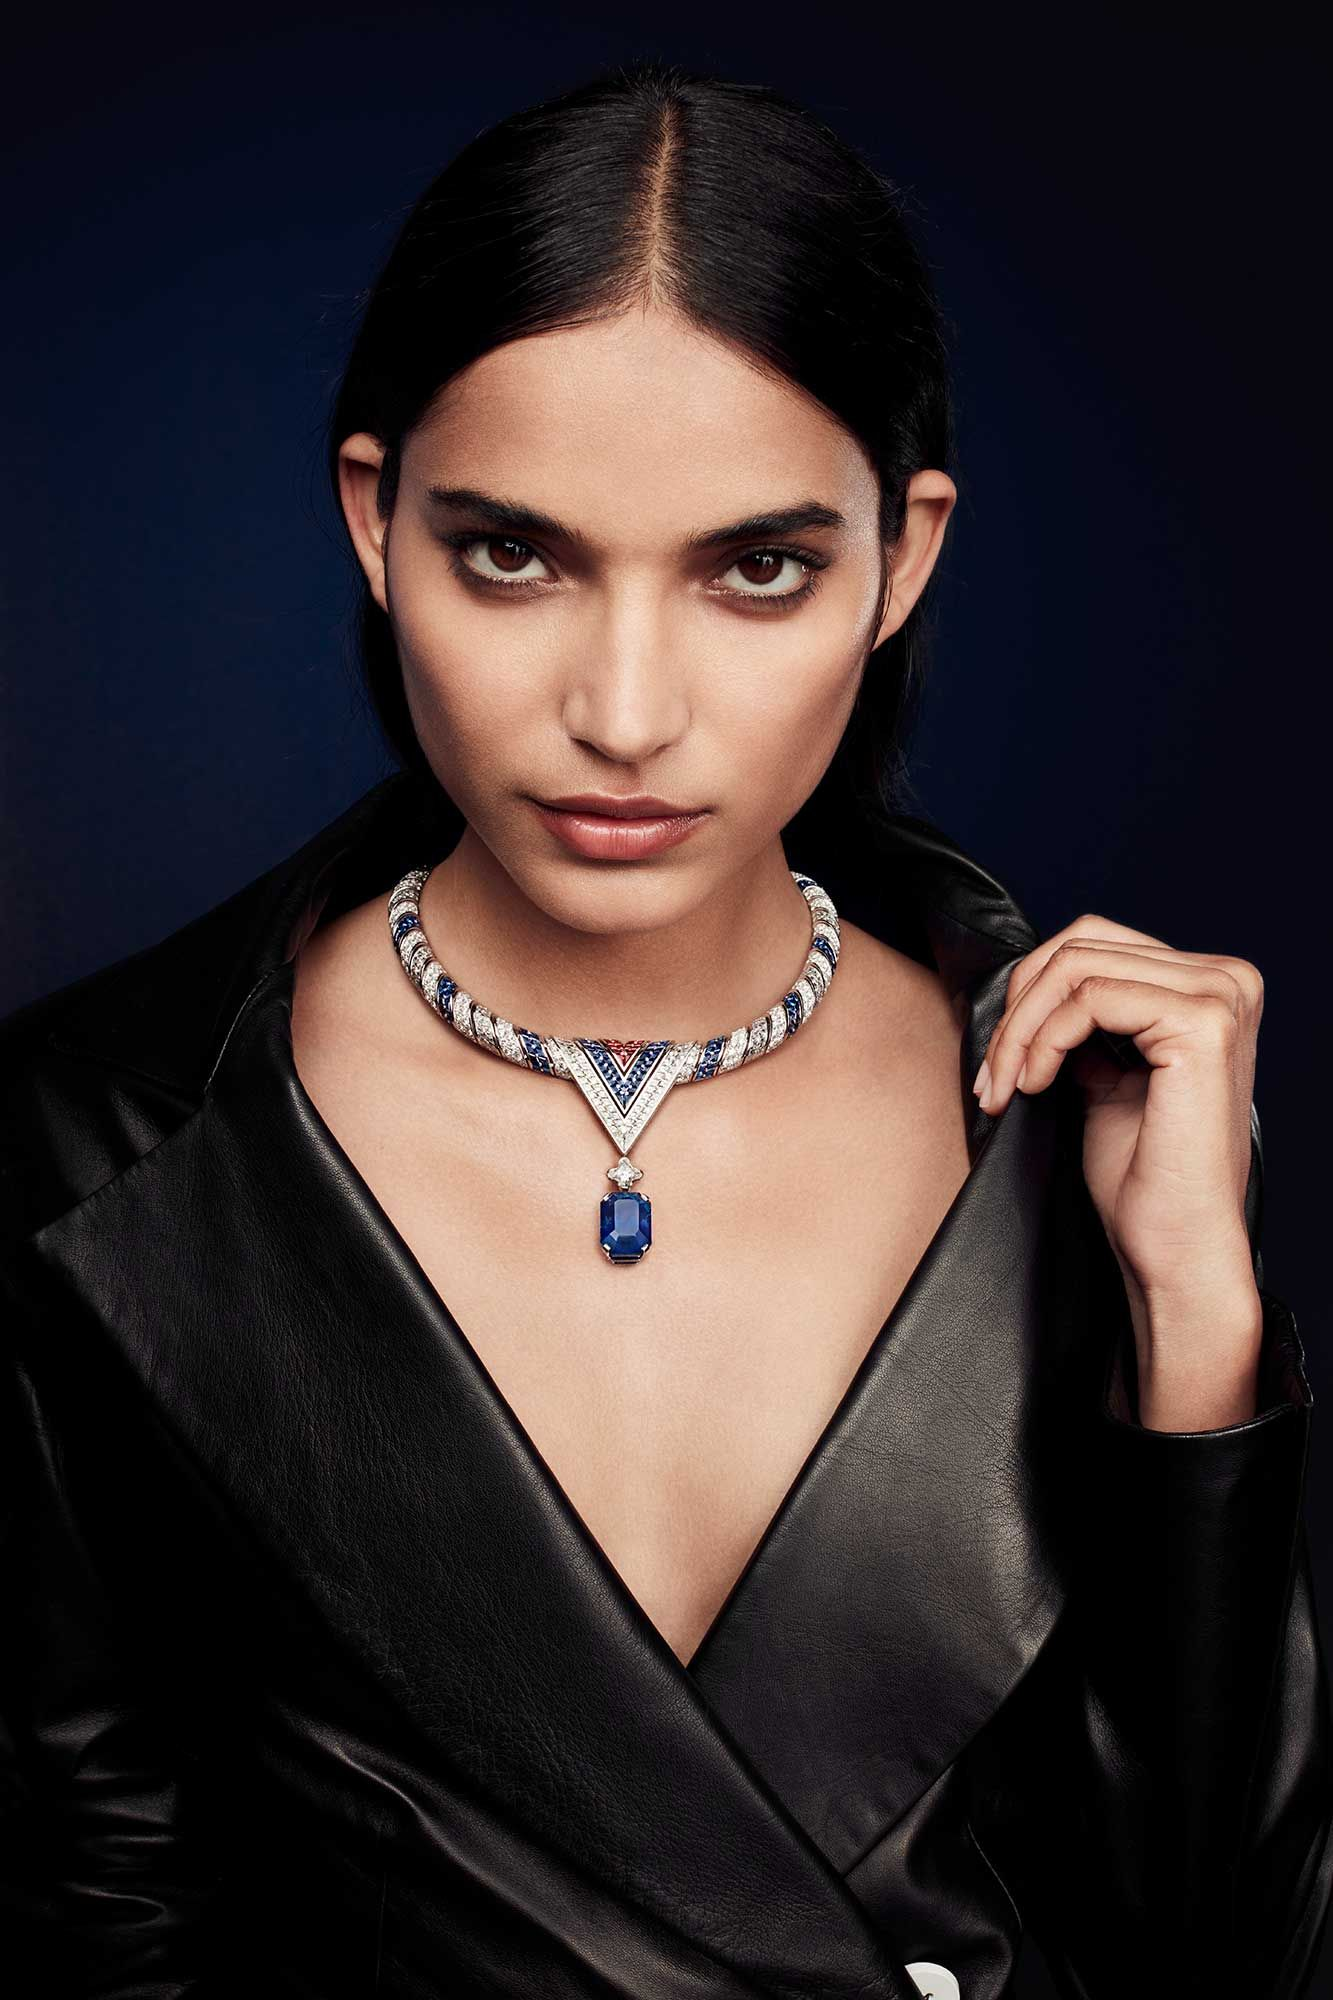 The Most Magnificent Pieces From Louis Vuitton's New High Jewellery Collection